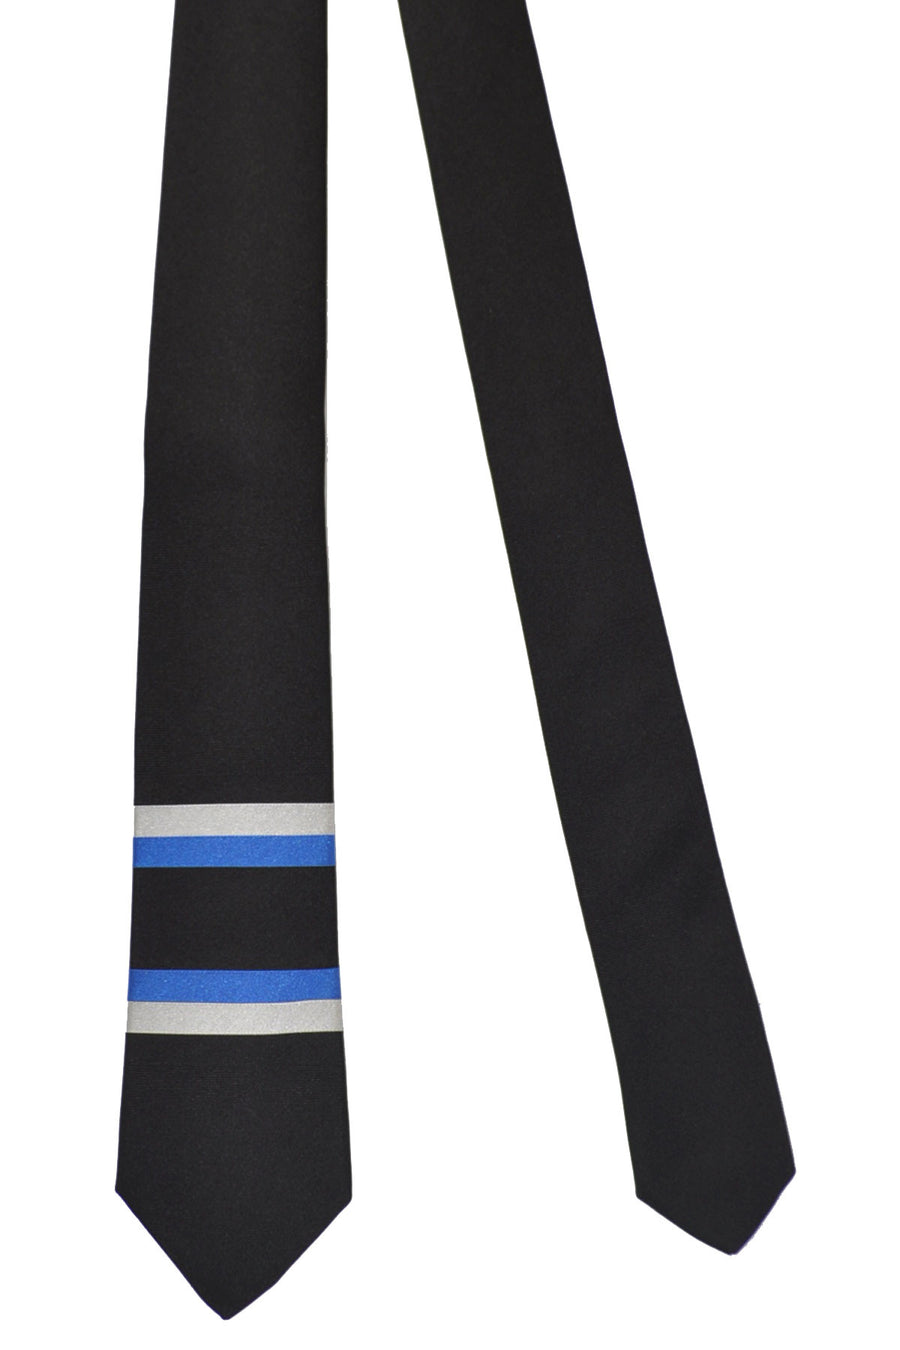 Givenchy Tie Black Royal Blue Silver Stripes Design - Narrow Cut